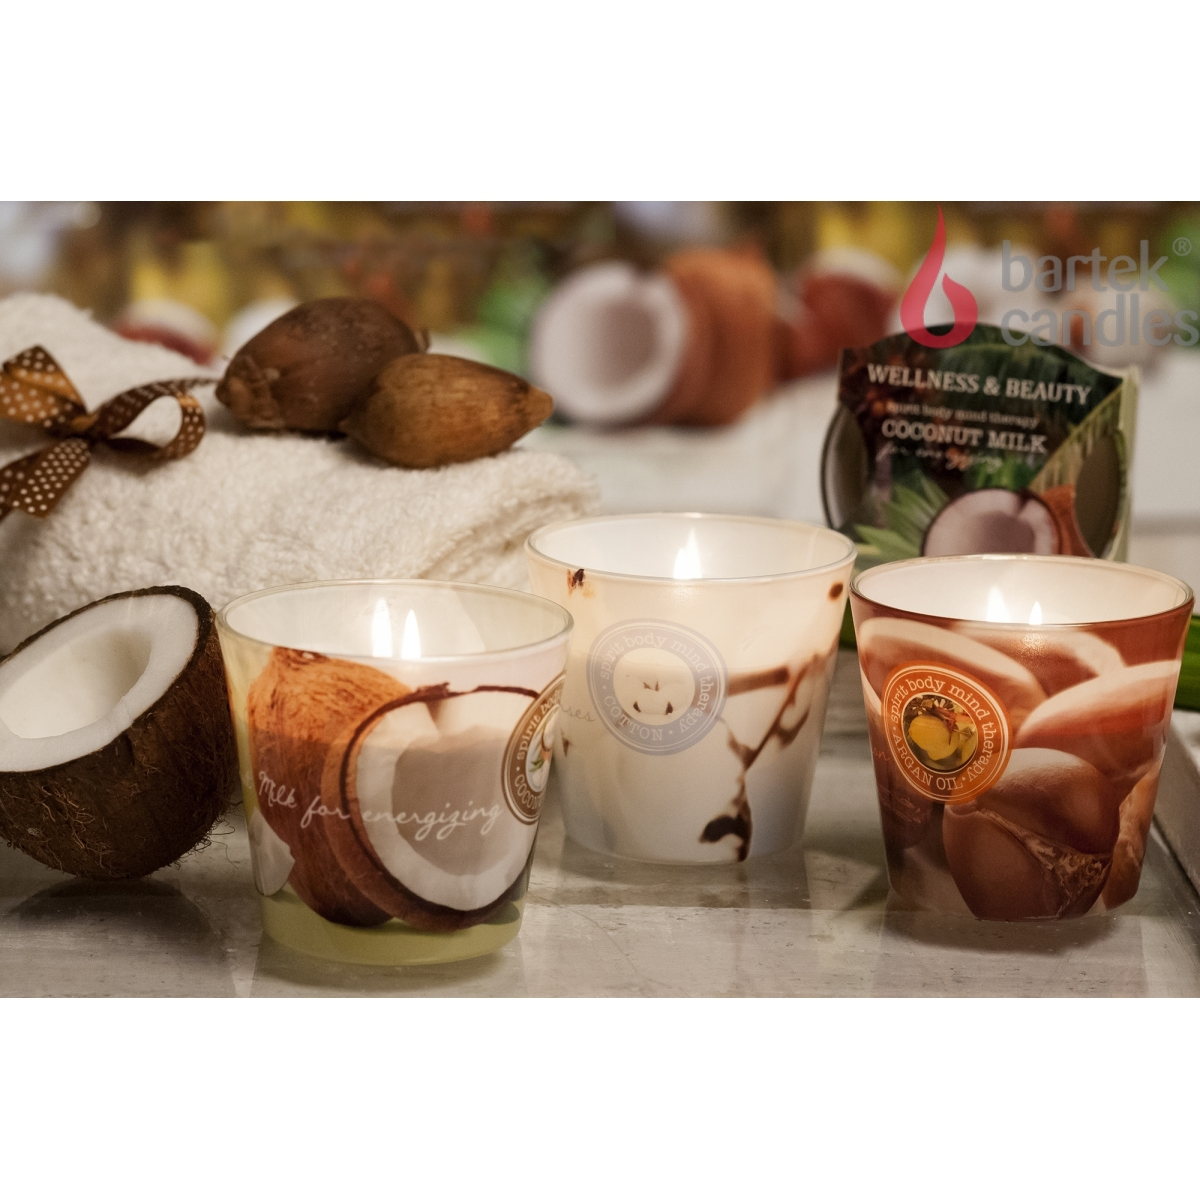 Bartek Candles svíčka 115 g Wellness & Beauty